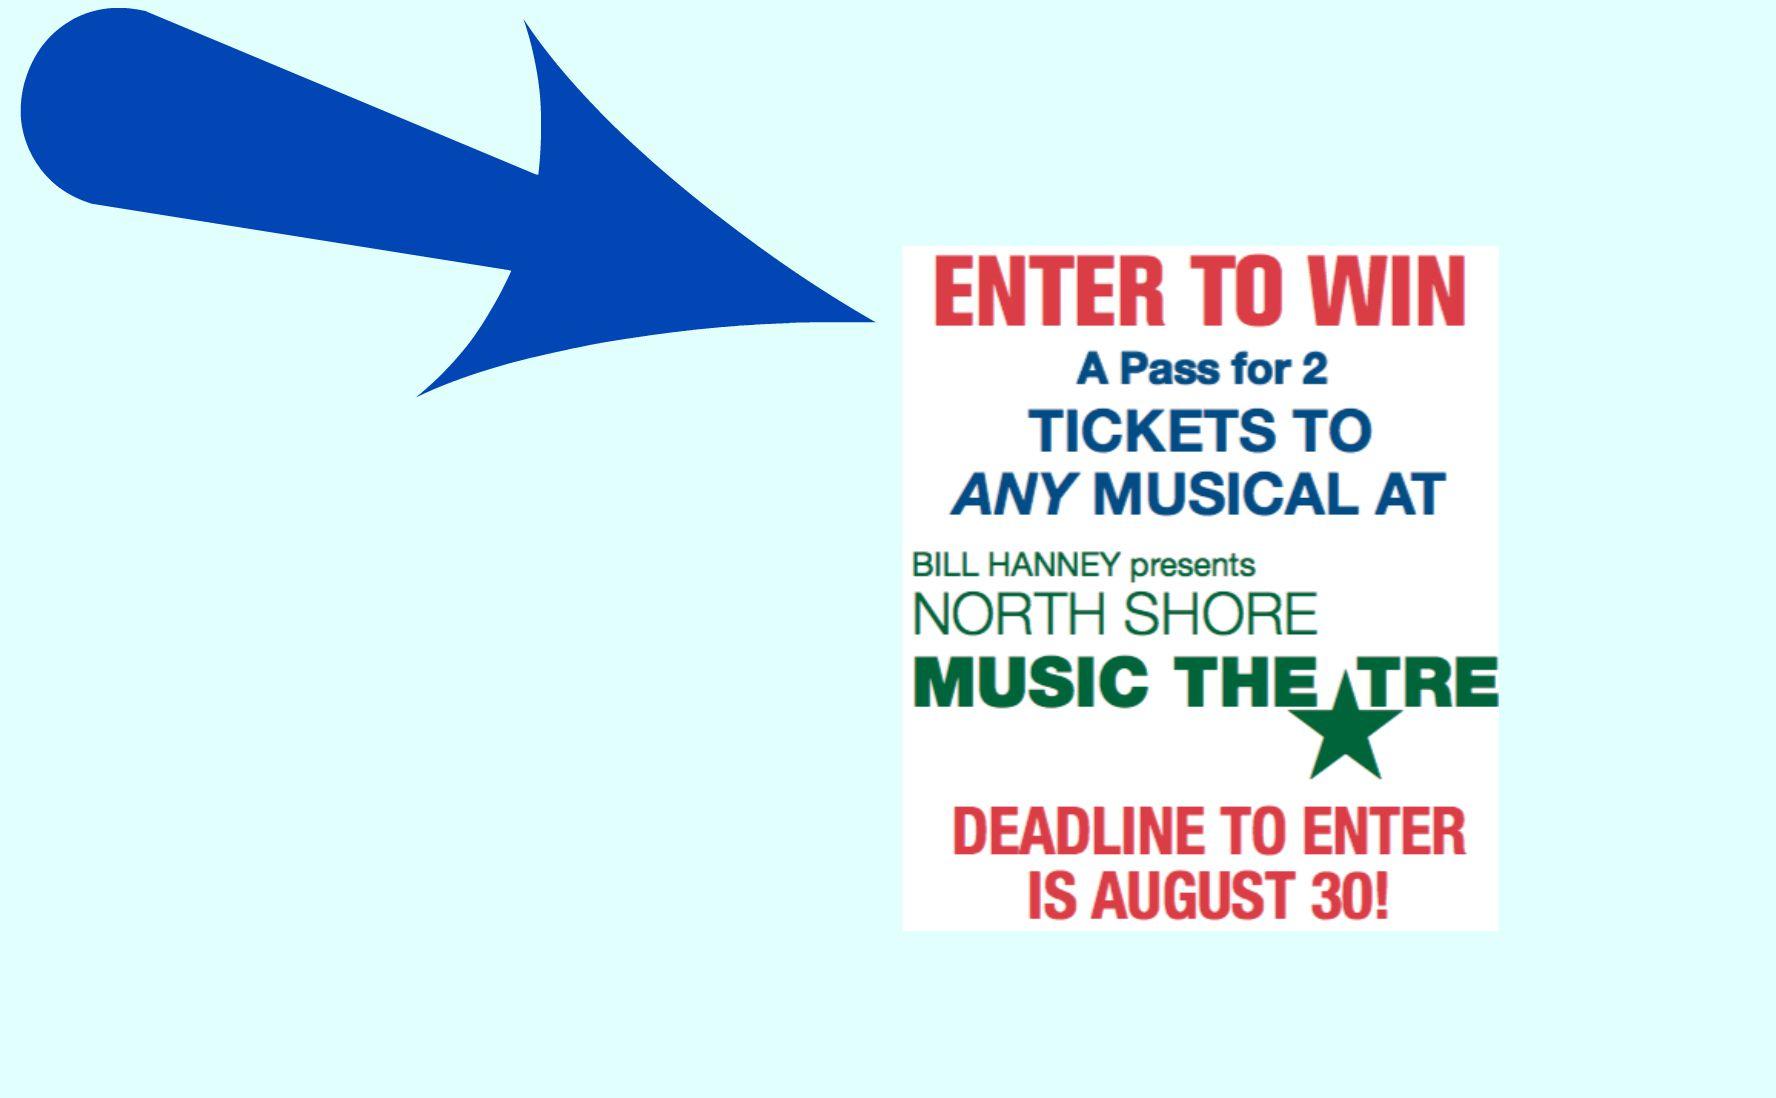 Enter to Win Aug 2015 Contest